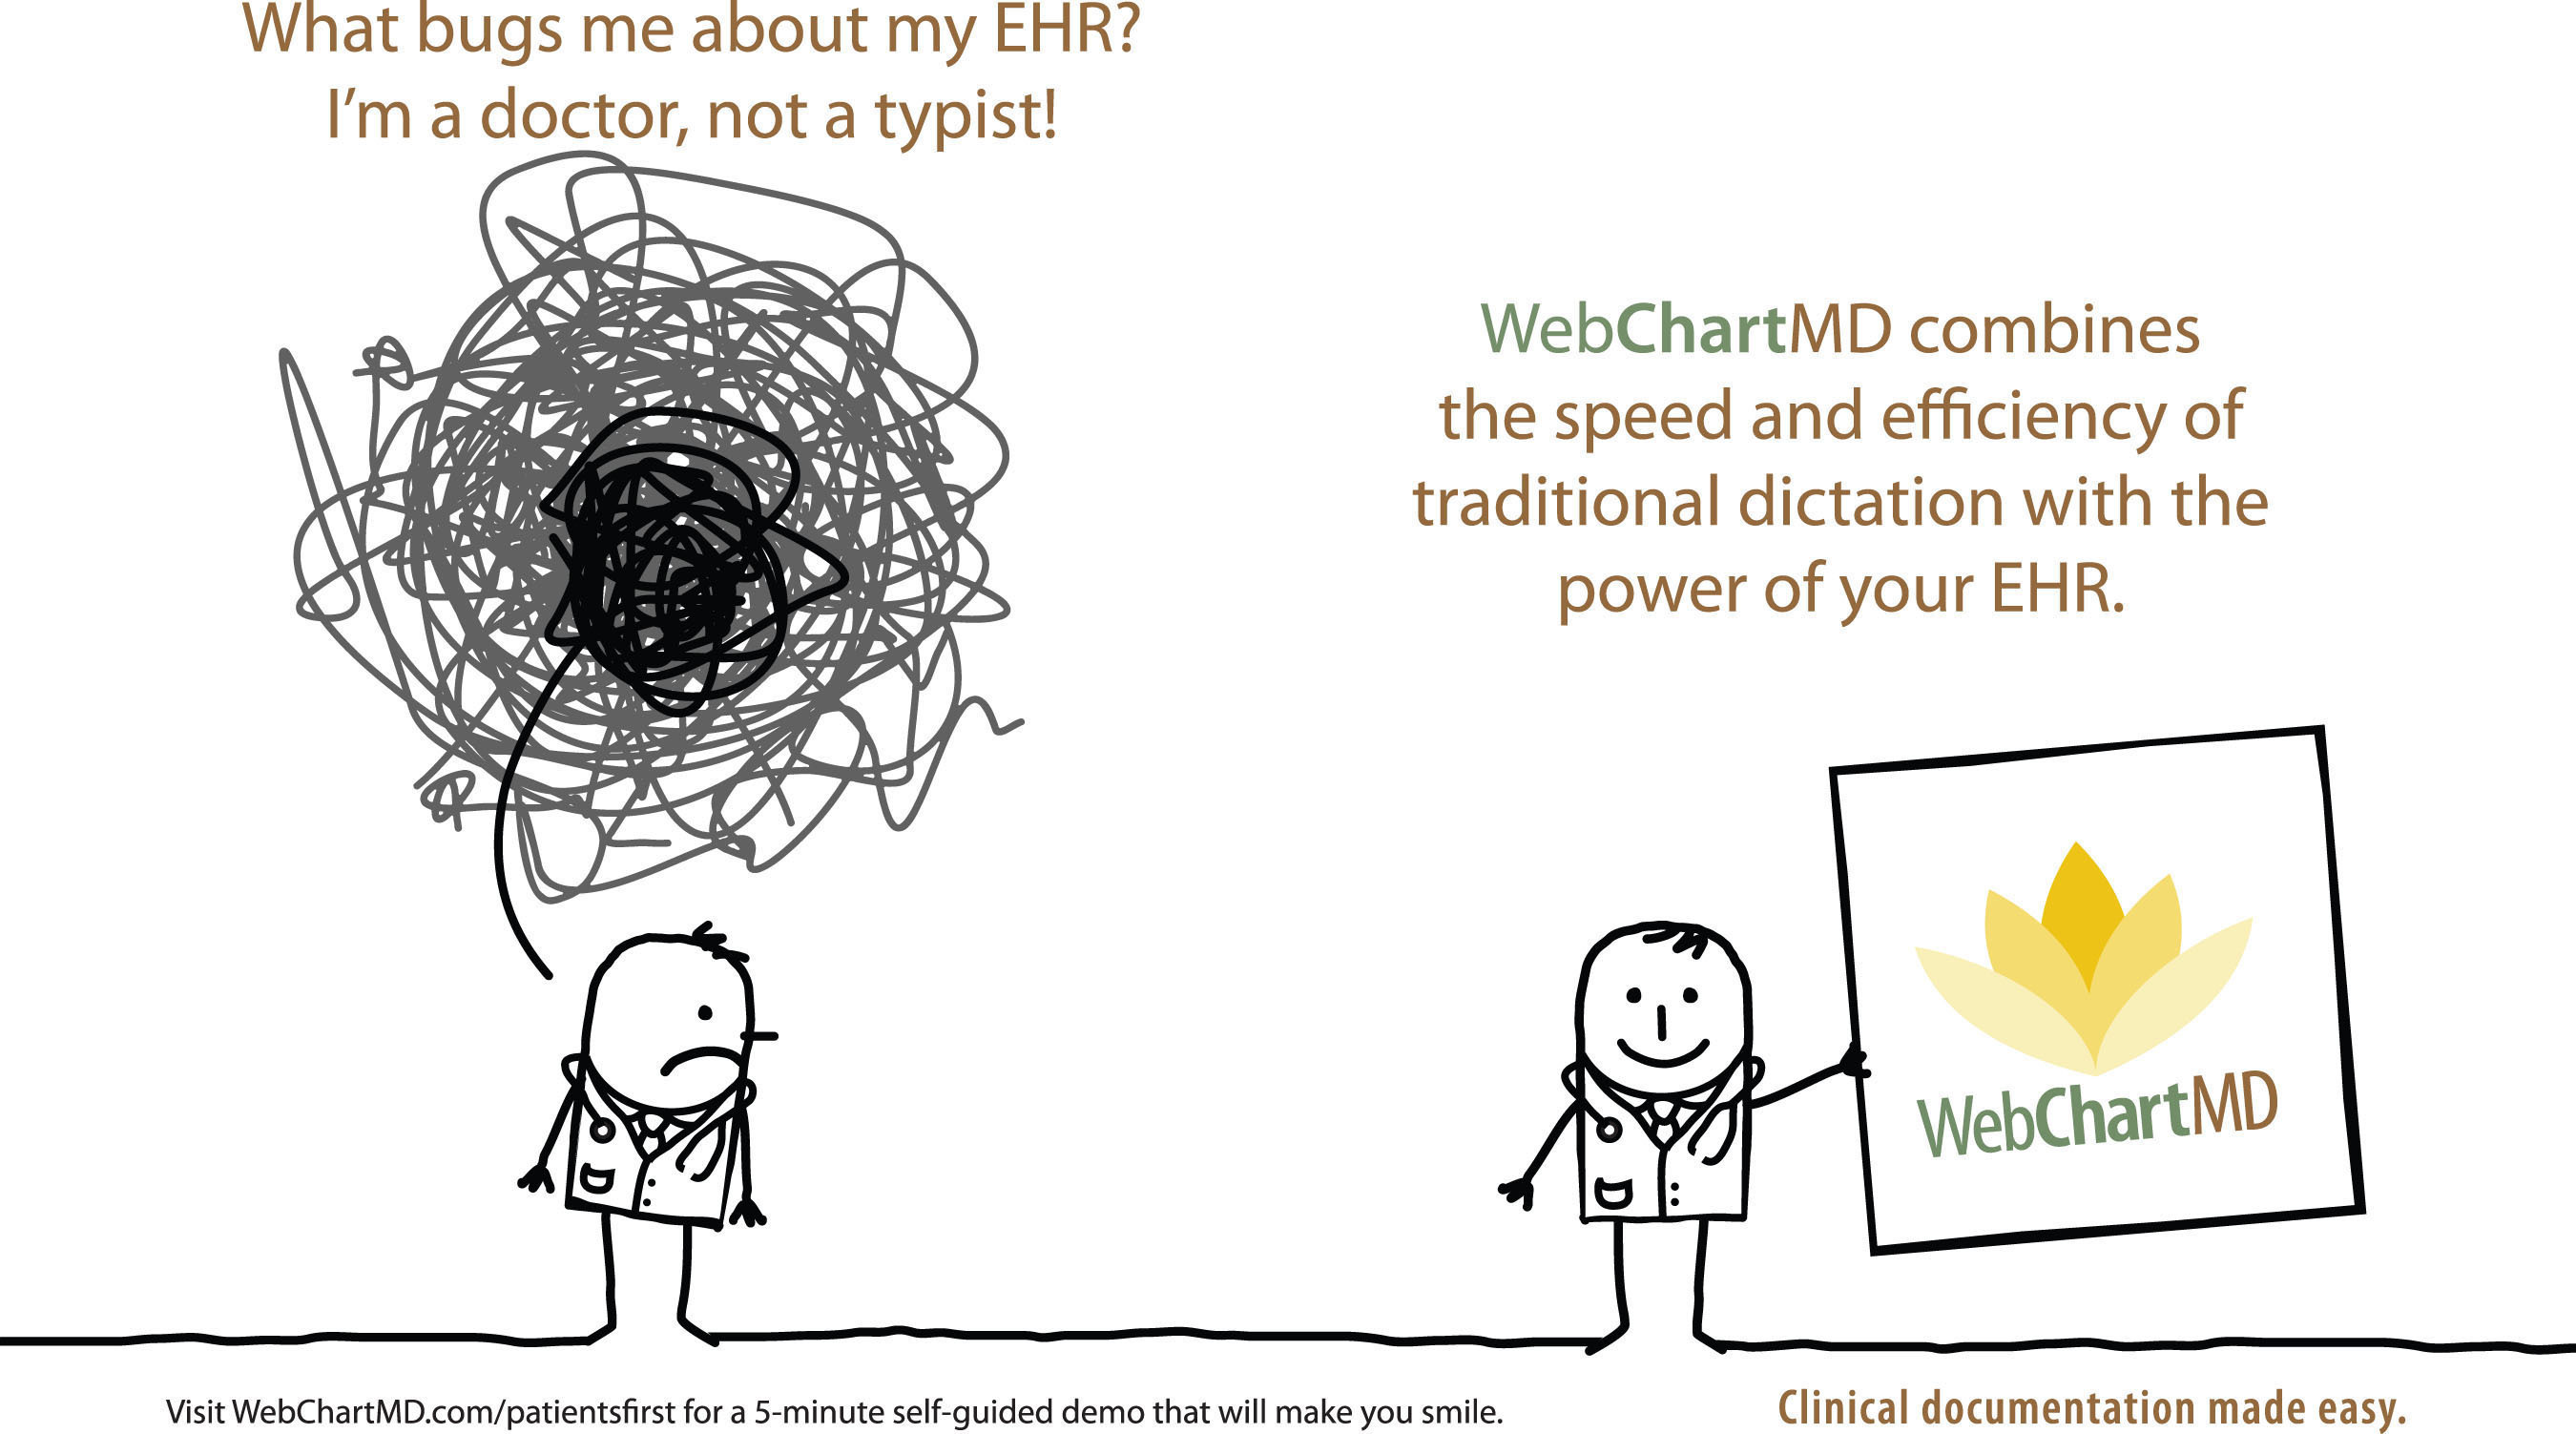 WebChartMD Webinar Helps Medical Transcription Companies Overcome Business Losses Due to EHRs